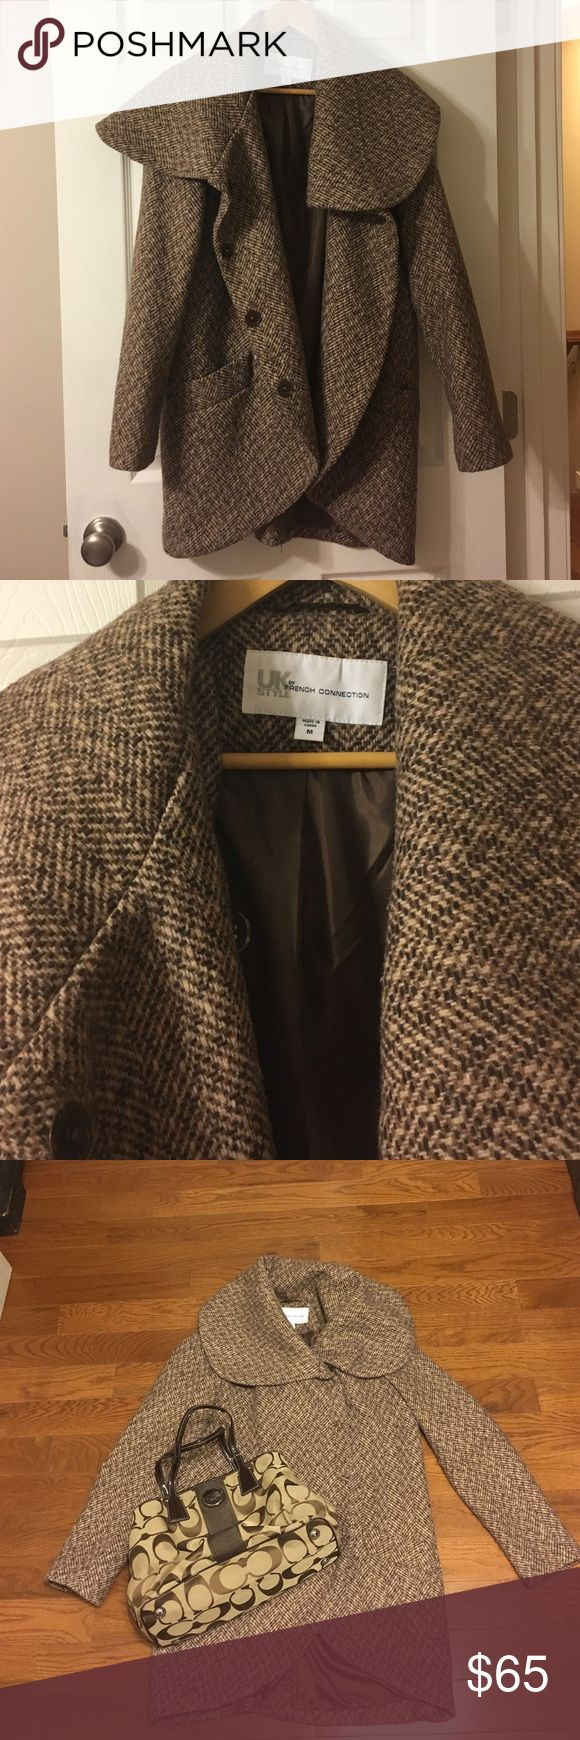 🍂French Connection Brown Tweed Coat This adorable brown tweed coat from U.K. style by French Connection is in excellent condition with minimal signs of wear! Super warm, comfy, and stylish. Size medium. French Connection Jackets & Coats Pea Coats